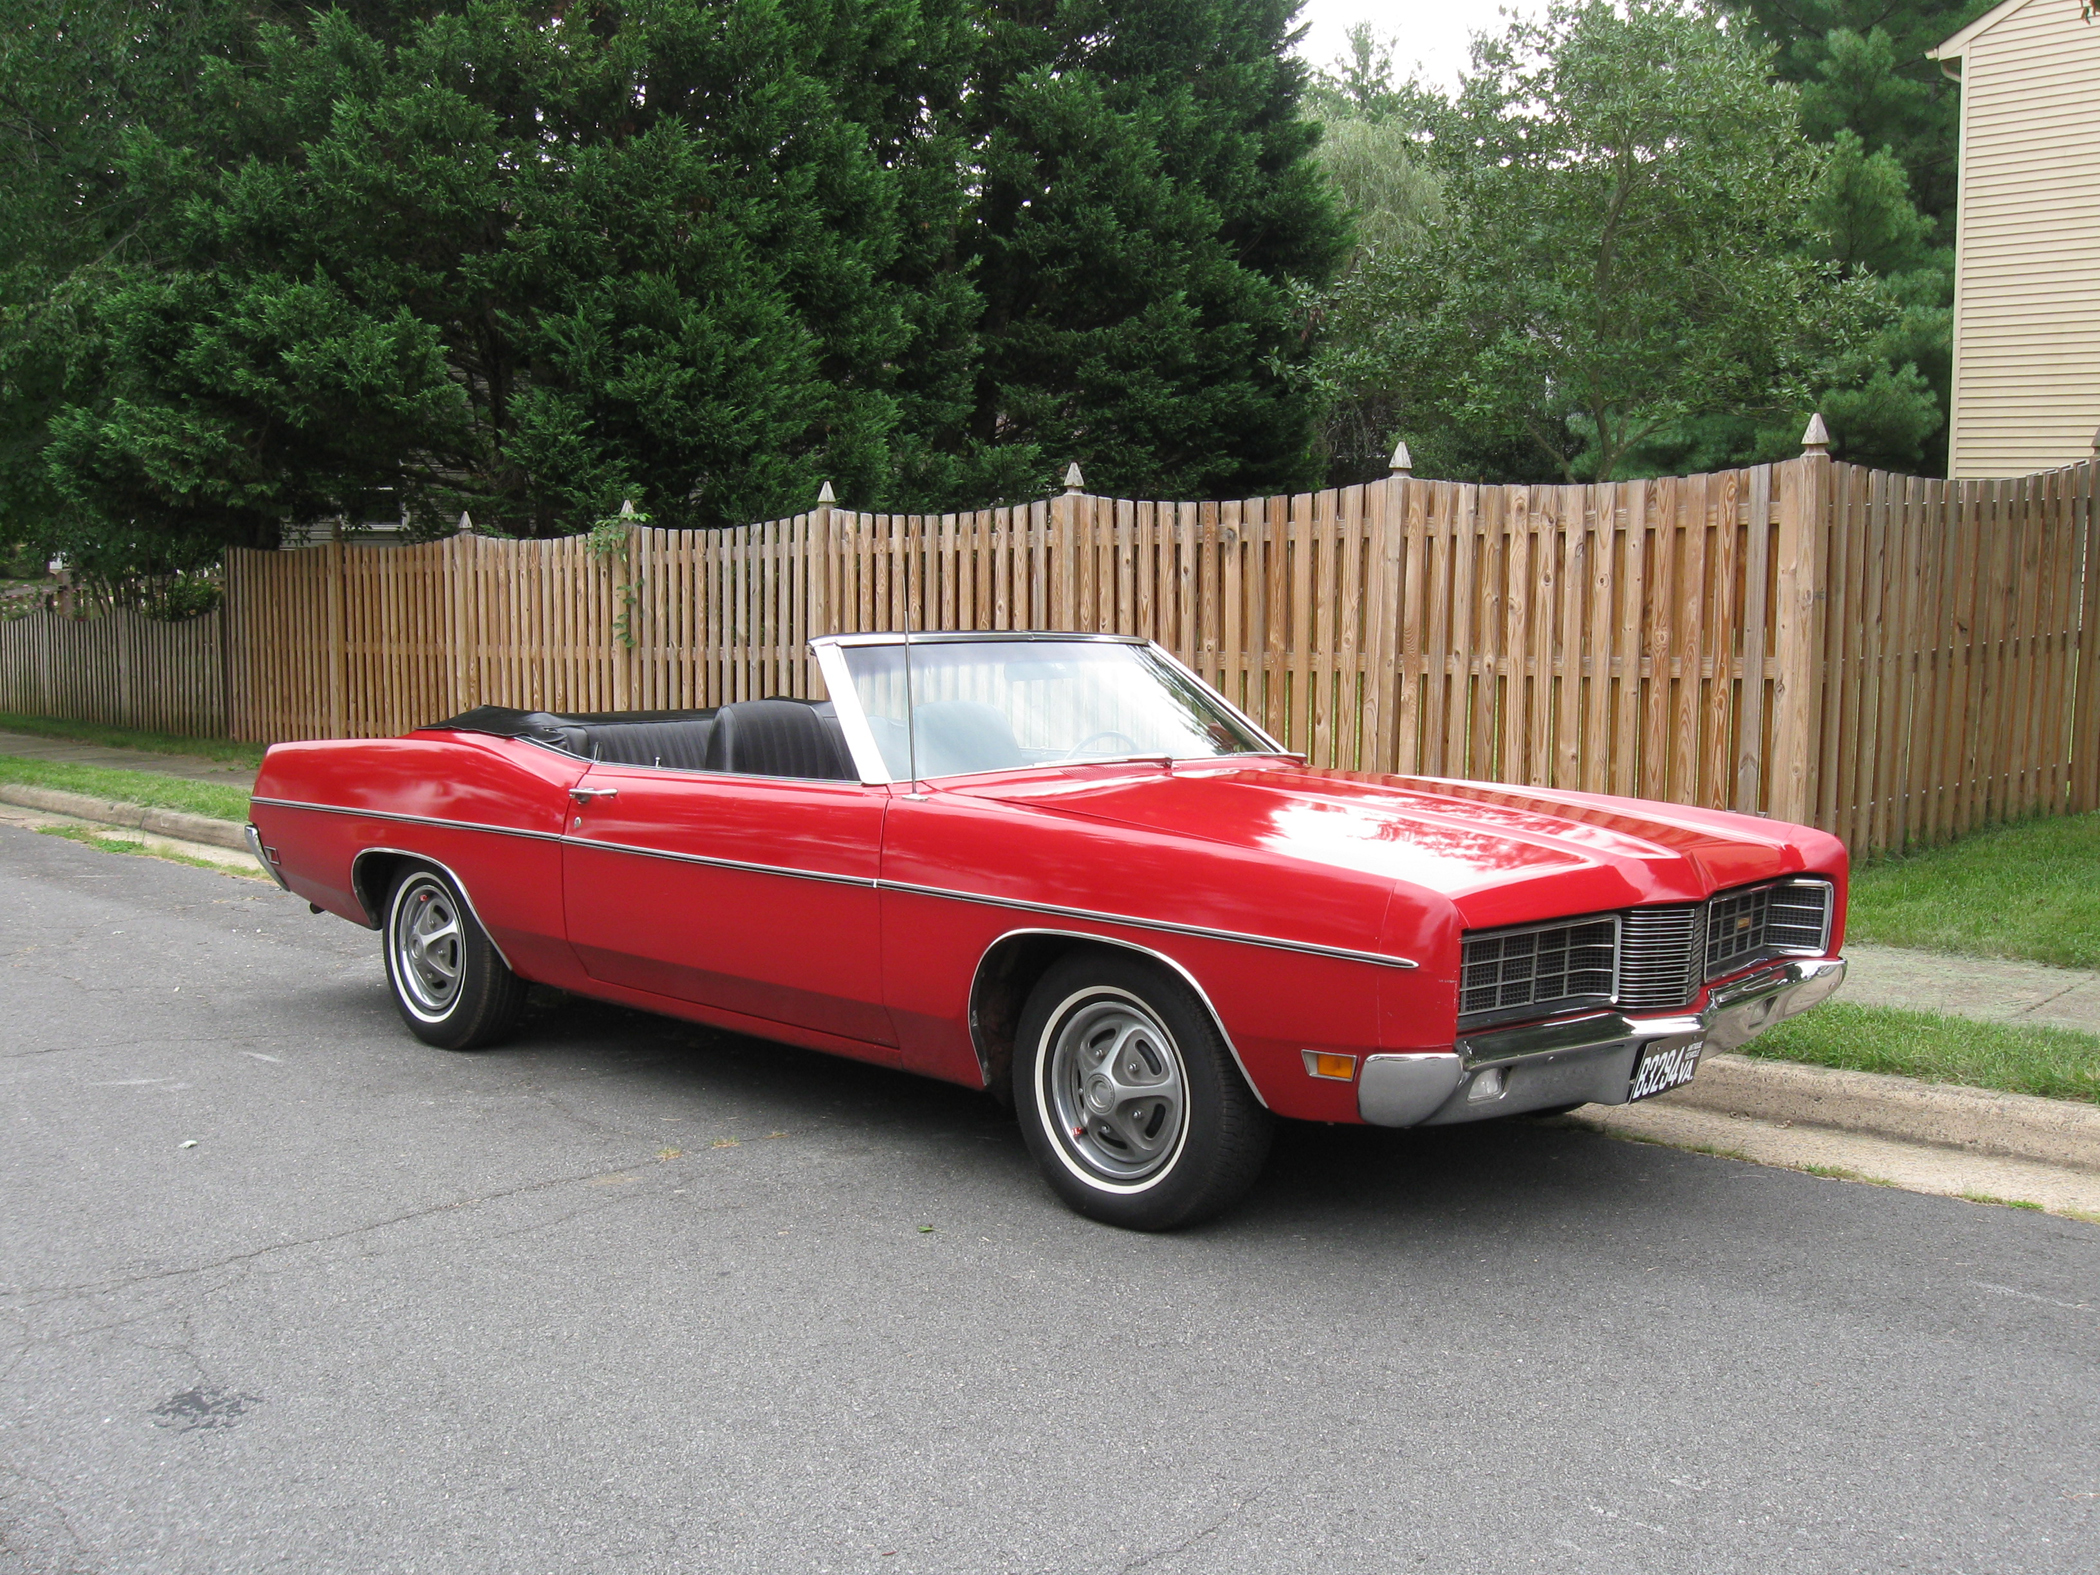 1970 Ford Galaxie Xl Convertible Has 400 Hp V 8 Classic Classics Groovecar